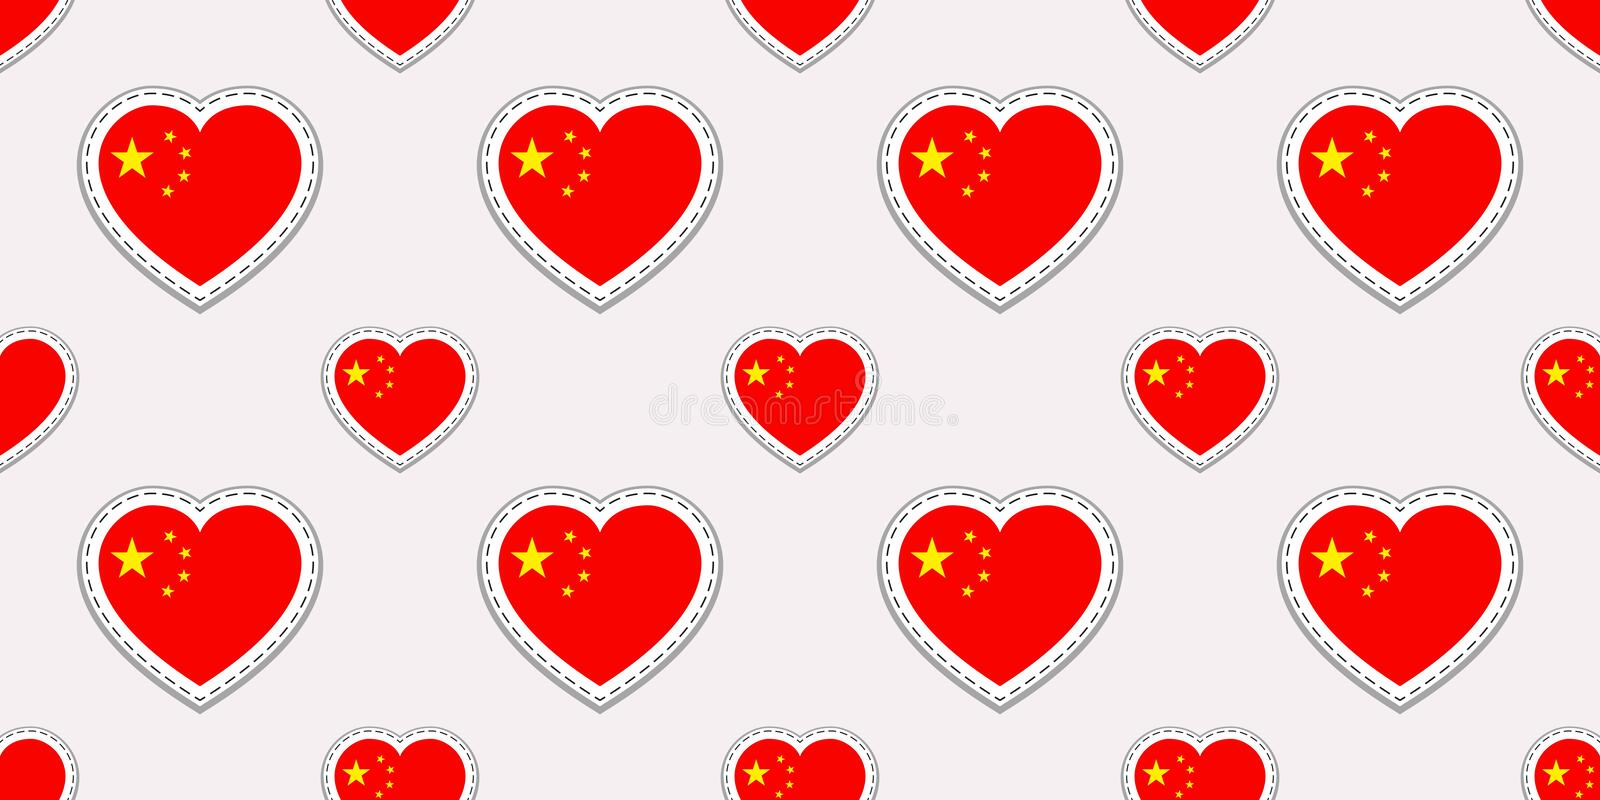 China flag seamless pattern. Vector chinese flags stickers. Love hearts symbols. Texture for language courses, sports pages, trave stock illustration